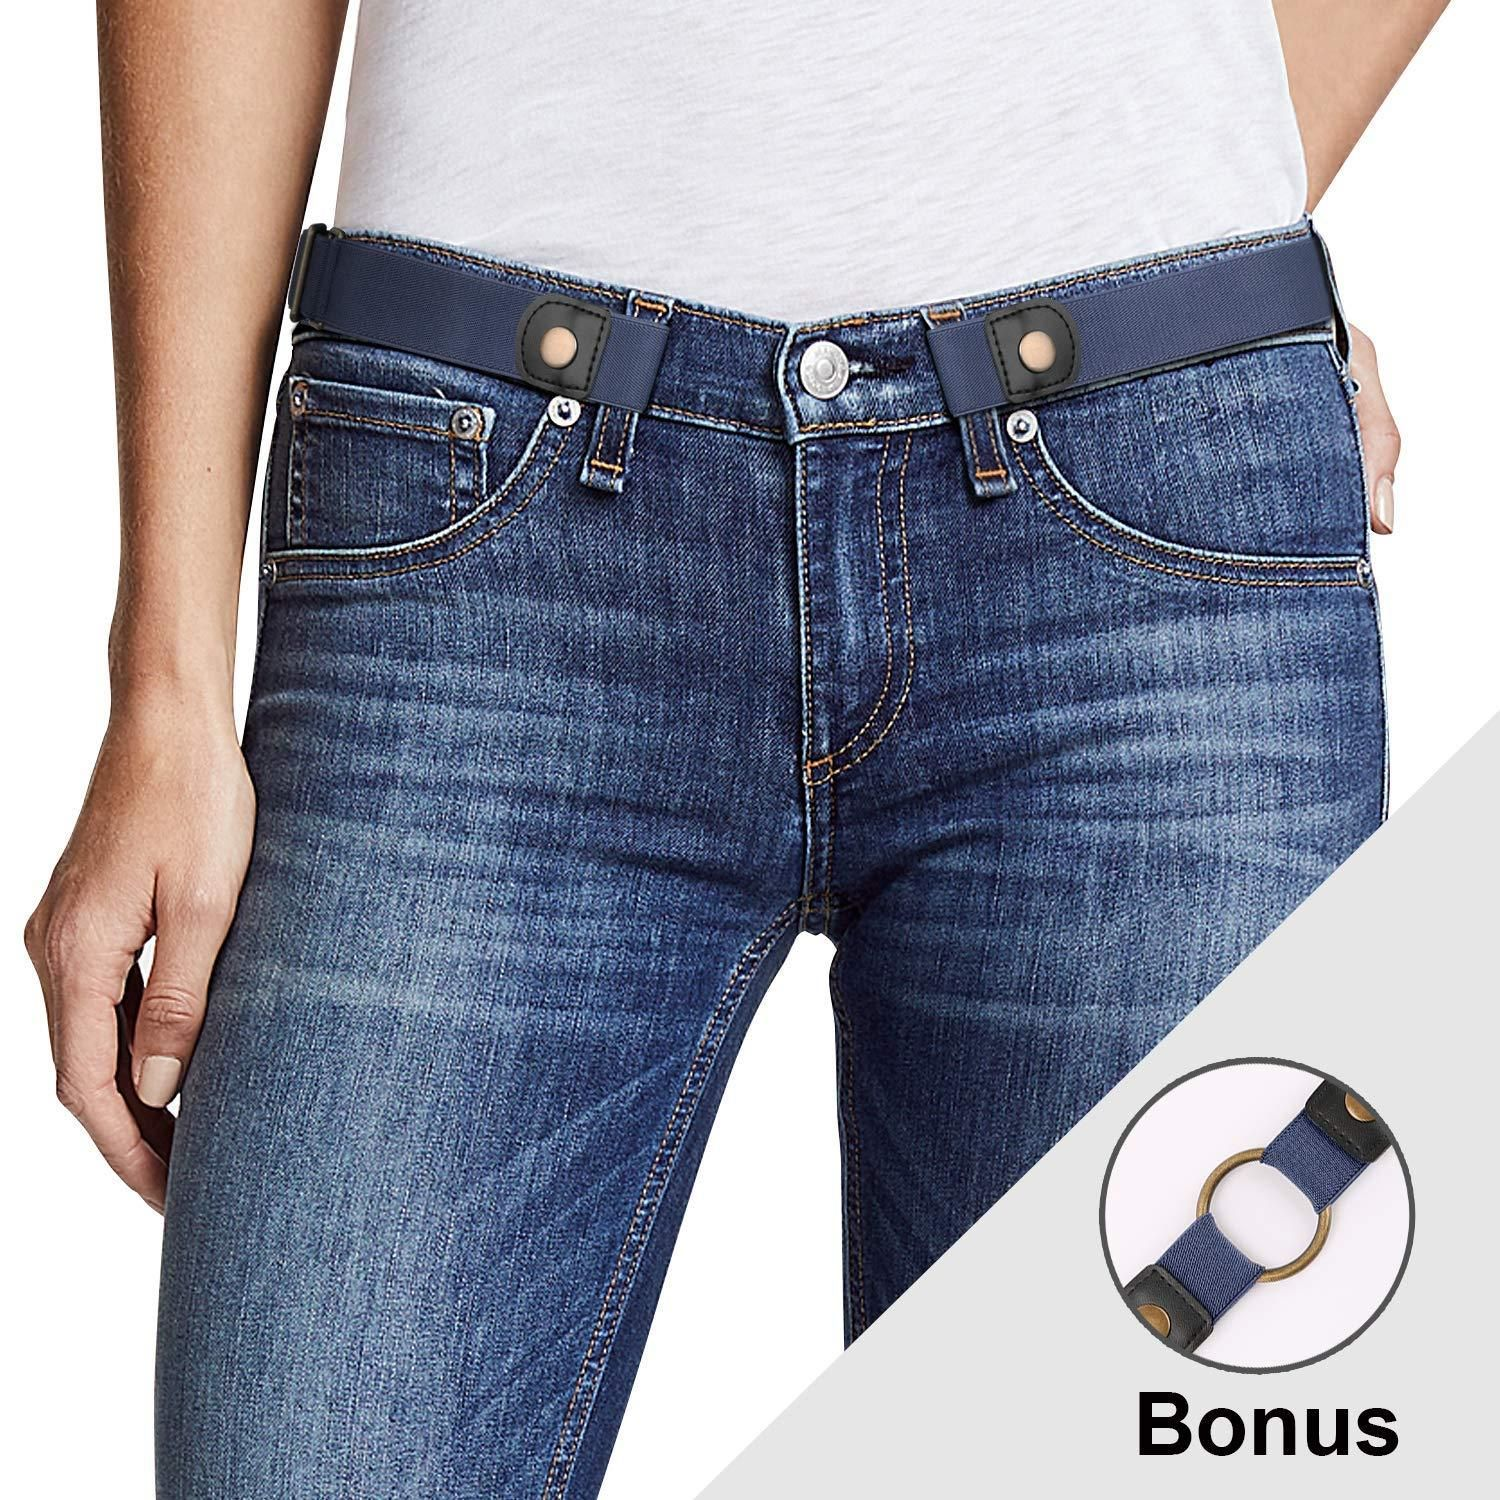 824570cb69 Buckle Free Women Stretch Belt Plus Size No Buckle Show Invisible Belt for Jeans  Pants